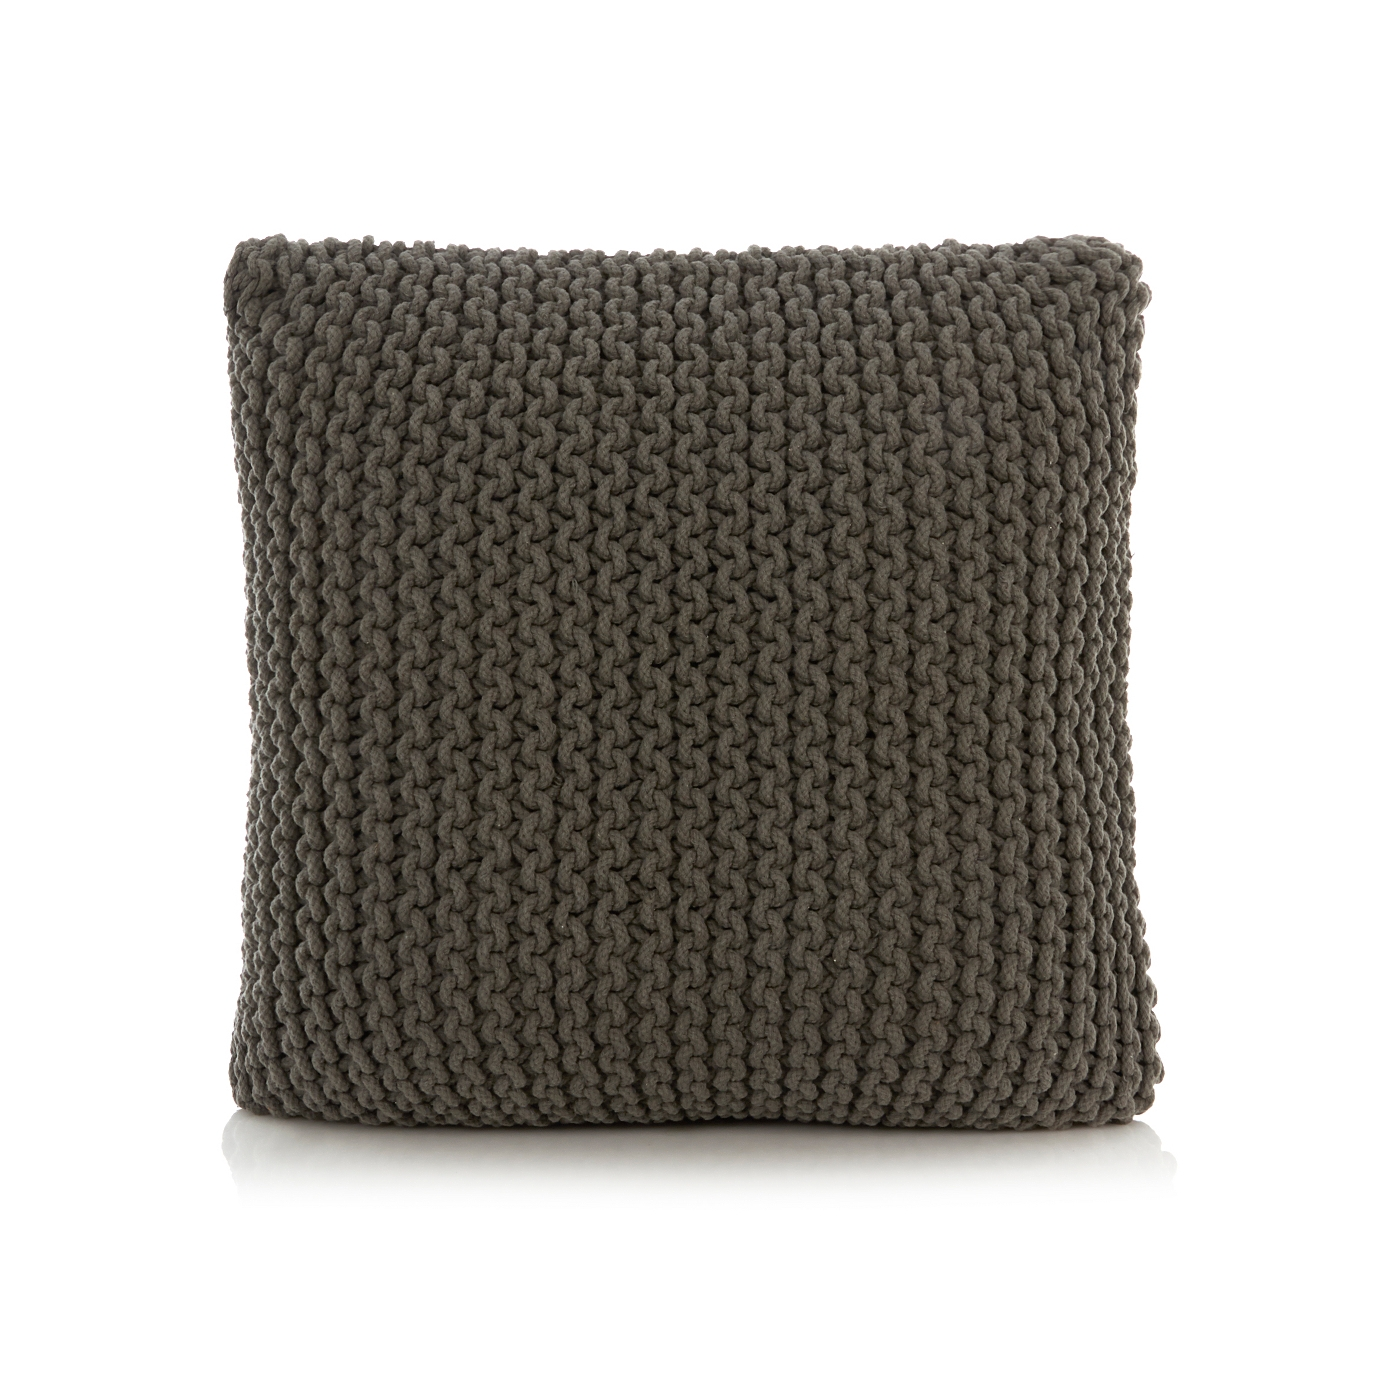 George Home Large Knitted Square Pouffe Cushion Footstools For Tesco Footstools And Pouffes (Image 8 of 15)